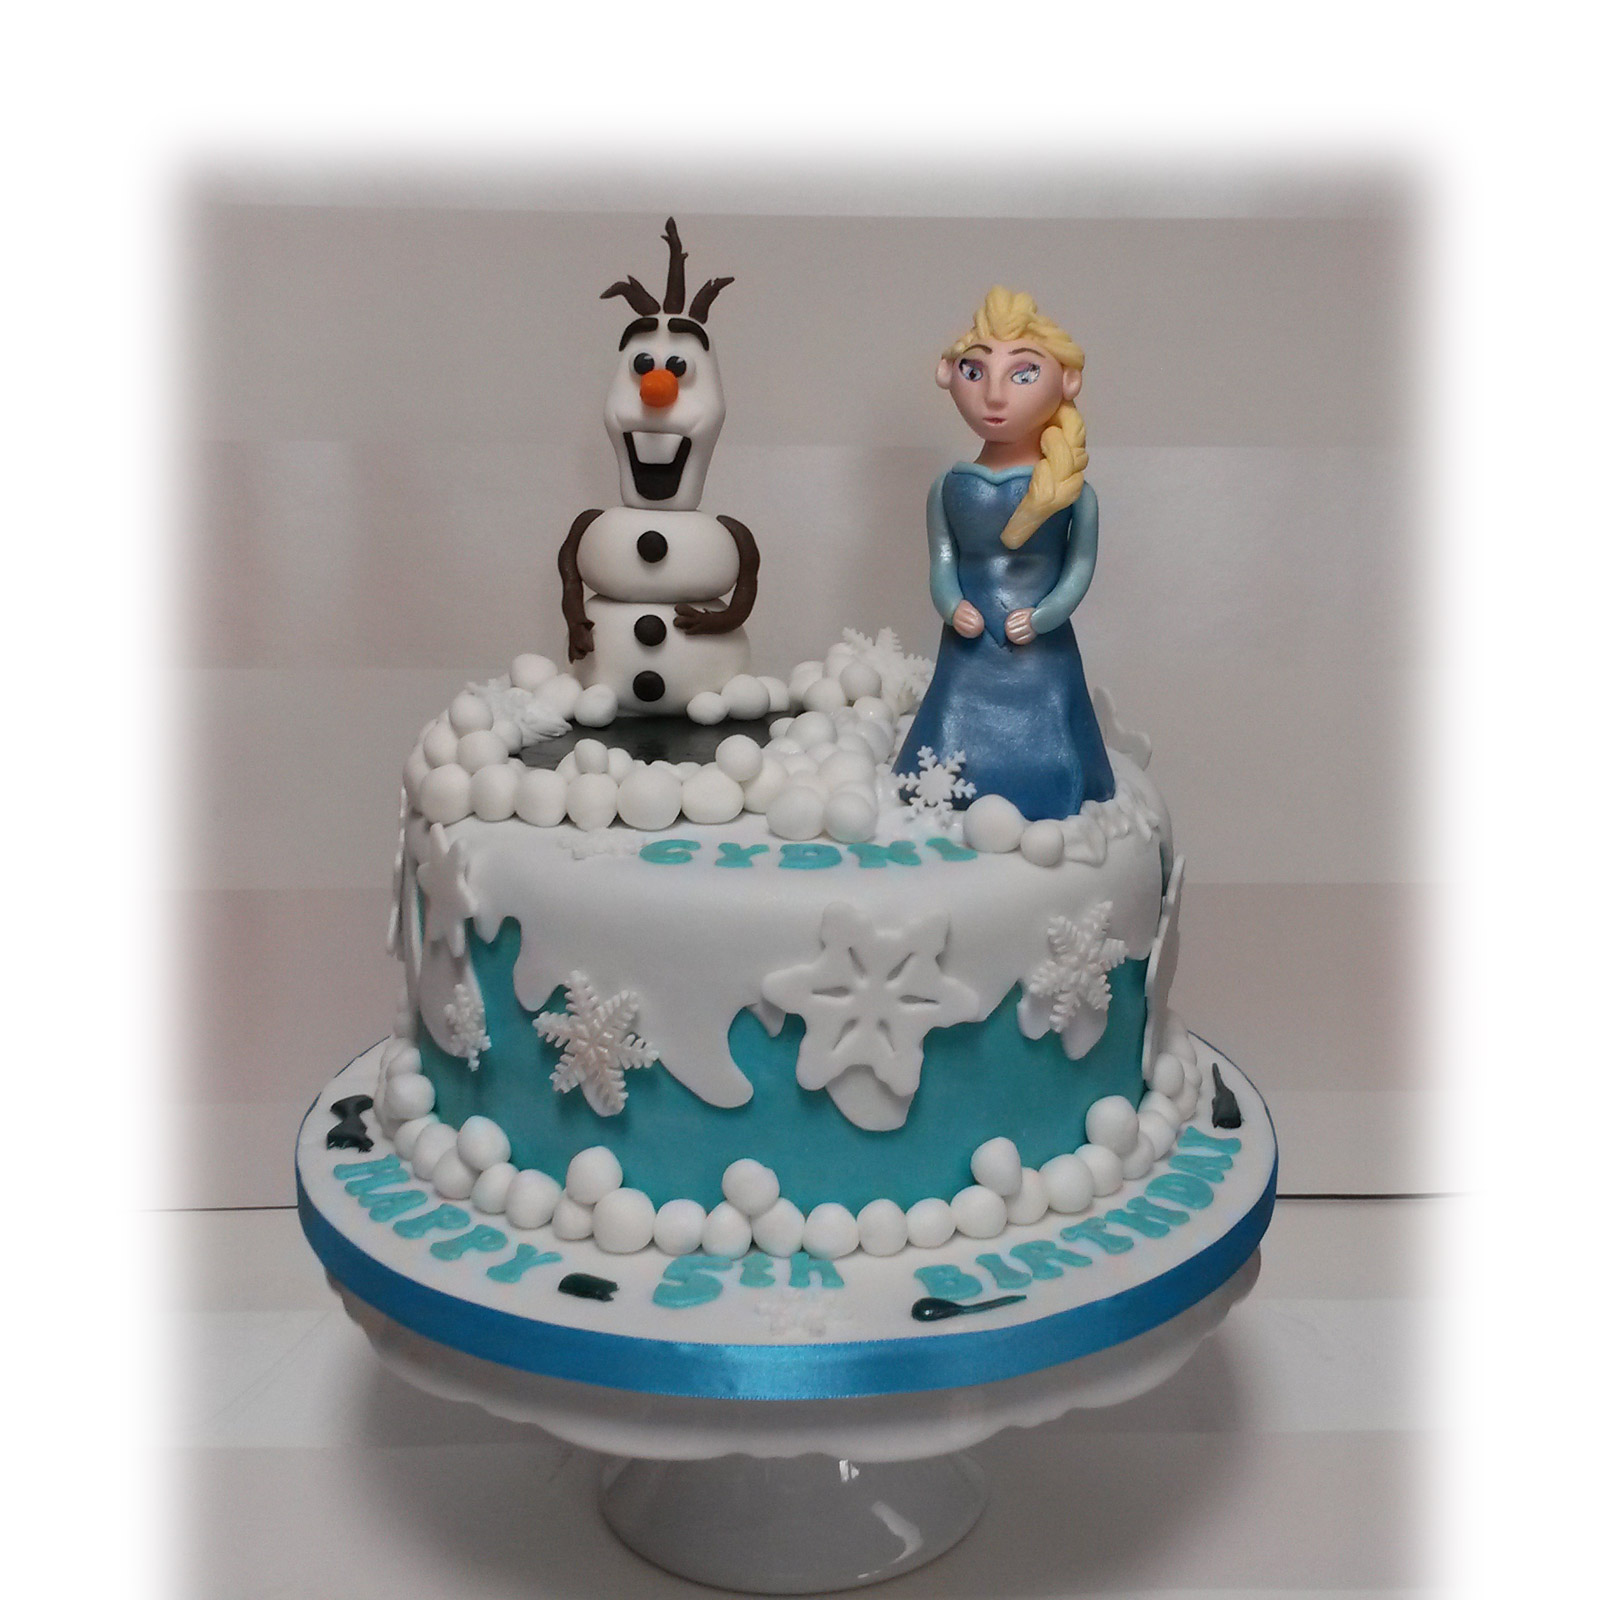 Birthday Cake Ideas Disney Frozen : Disney Frozen (Elsa) Birthday Cake - Bakealous